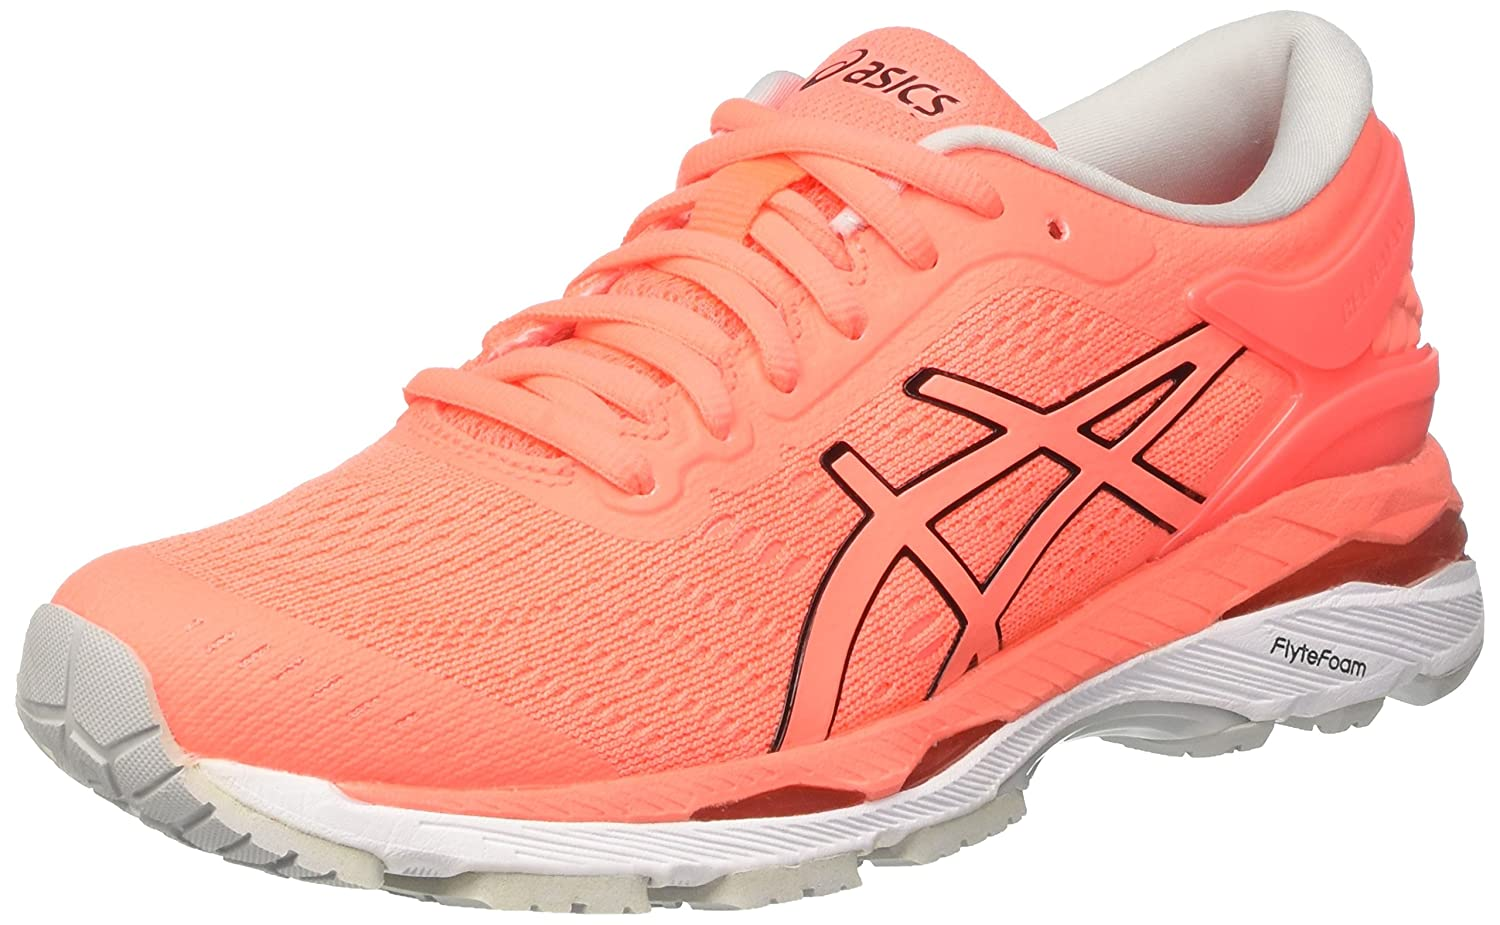 ASICS Women's Gel-Kayano 24 Running Shoe B0719DTHZ2 5.5 B(M) US|Flash Coral/Black/White